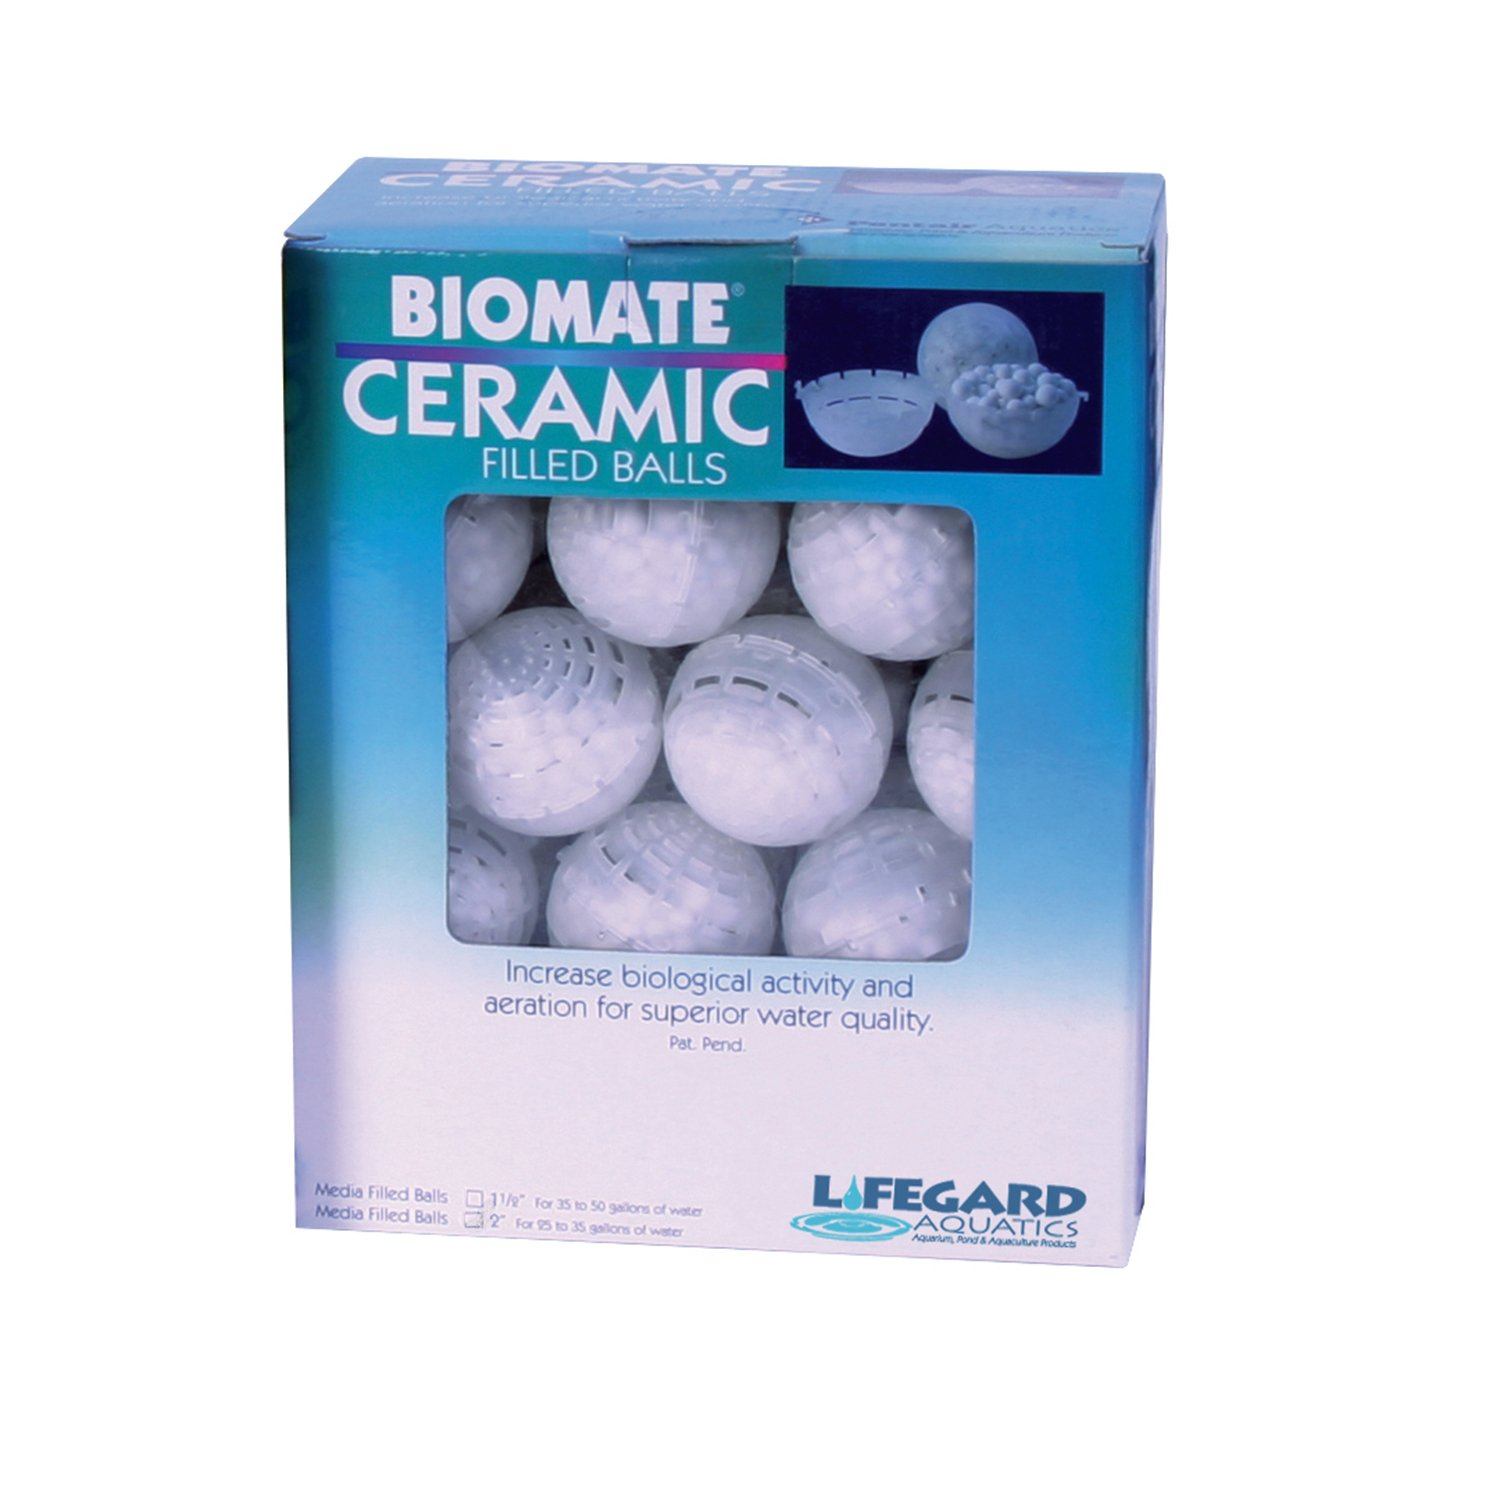 Lifegard Aquatics Bio-Mate Ceramic Refillable Media Balls